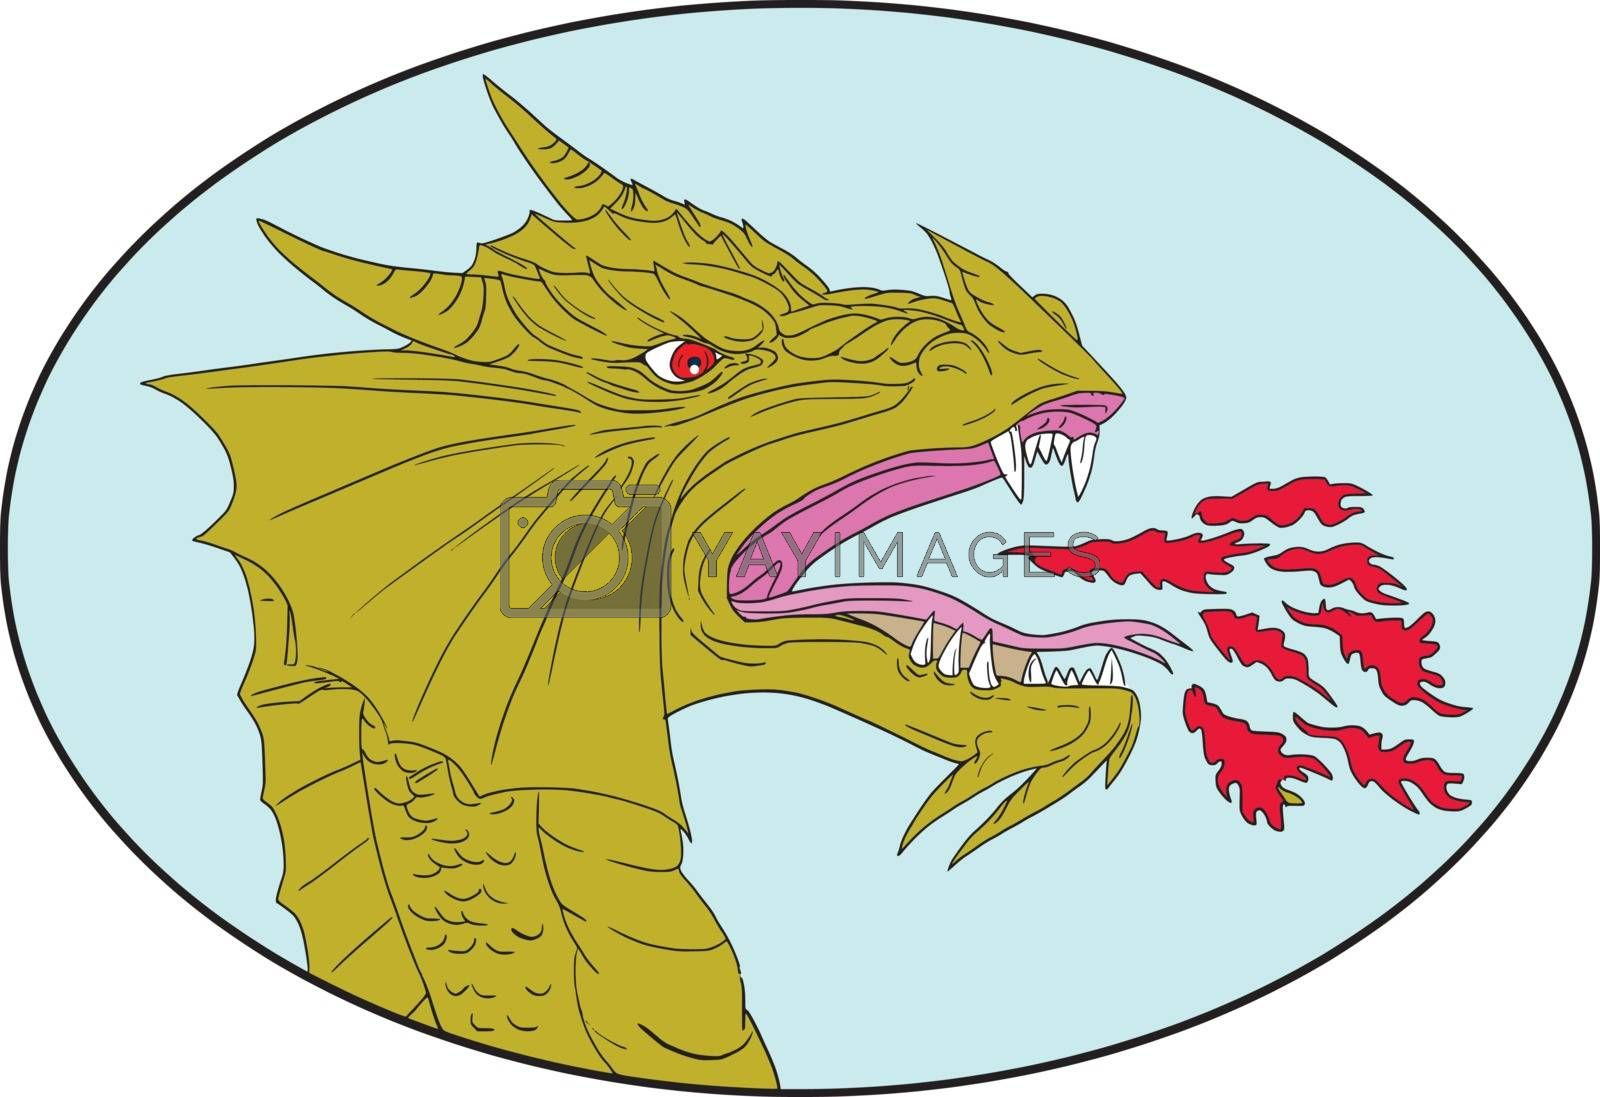 Drawing sketch style illustration of a dragon head breathing fire viewed from the side set inside oval shape on isolated background.